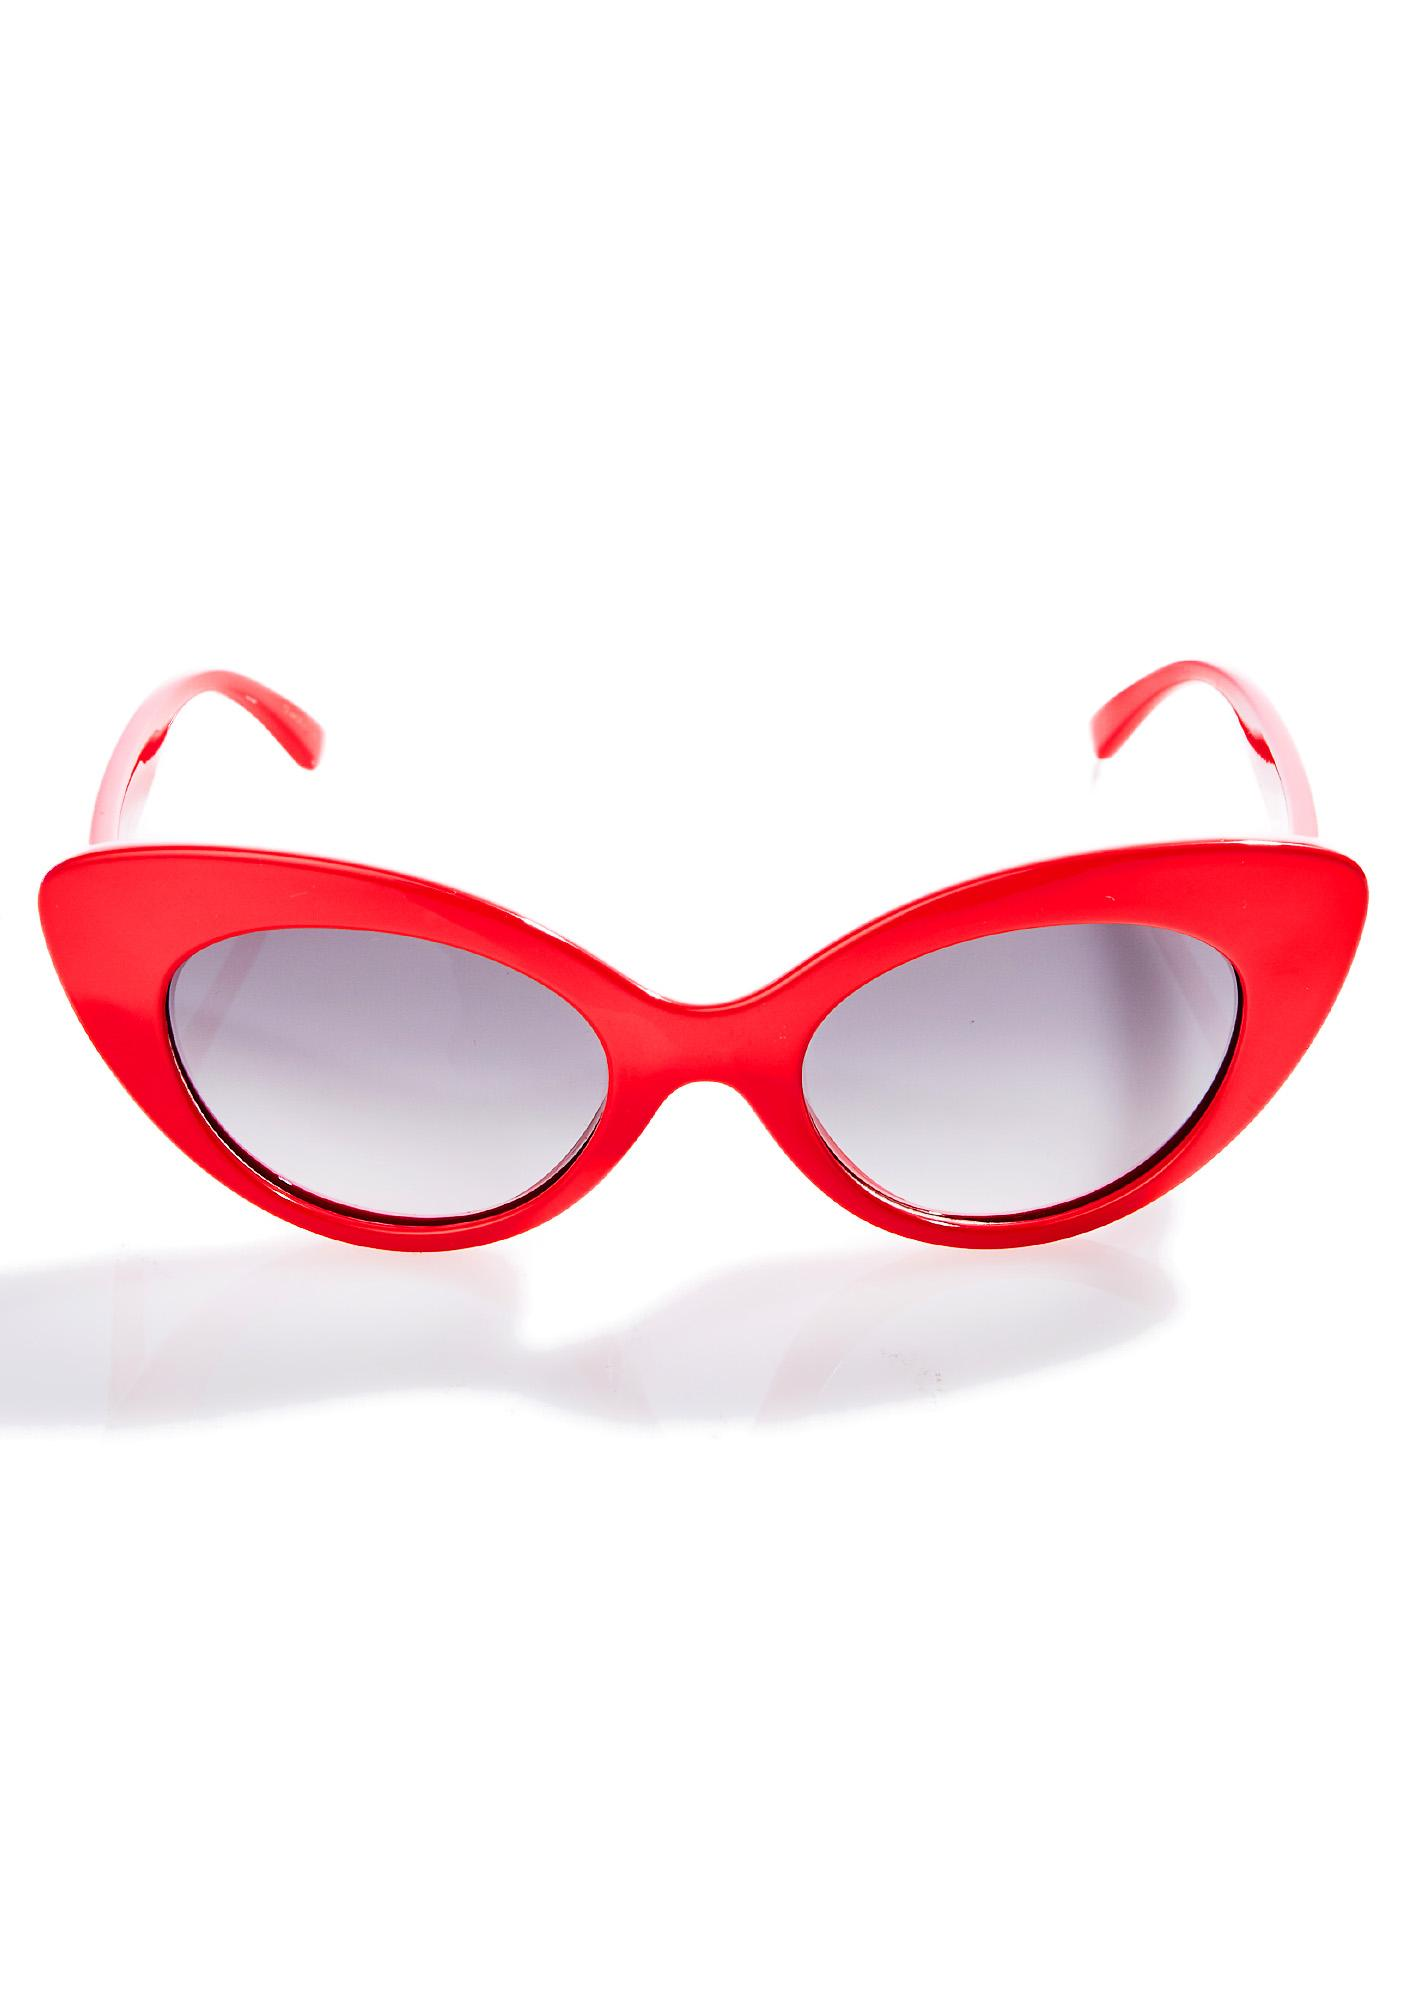 Crap Eyewear The Cherry Wild Gift Sunglasses